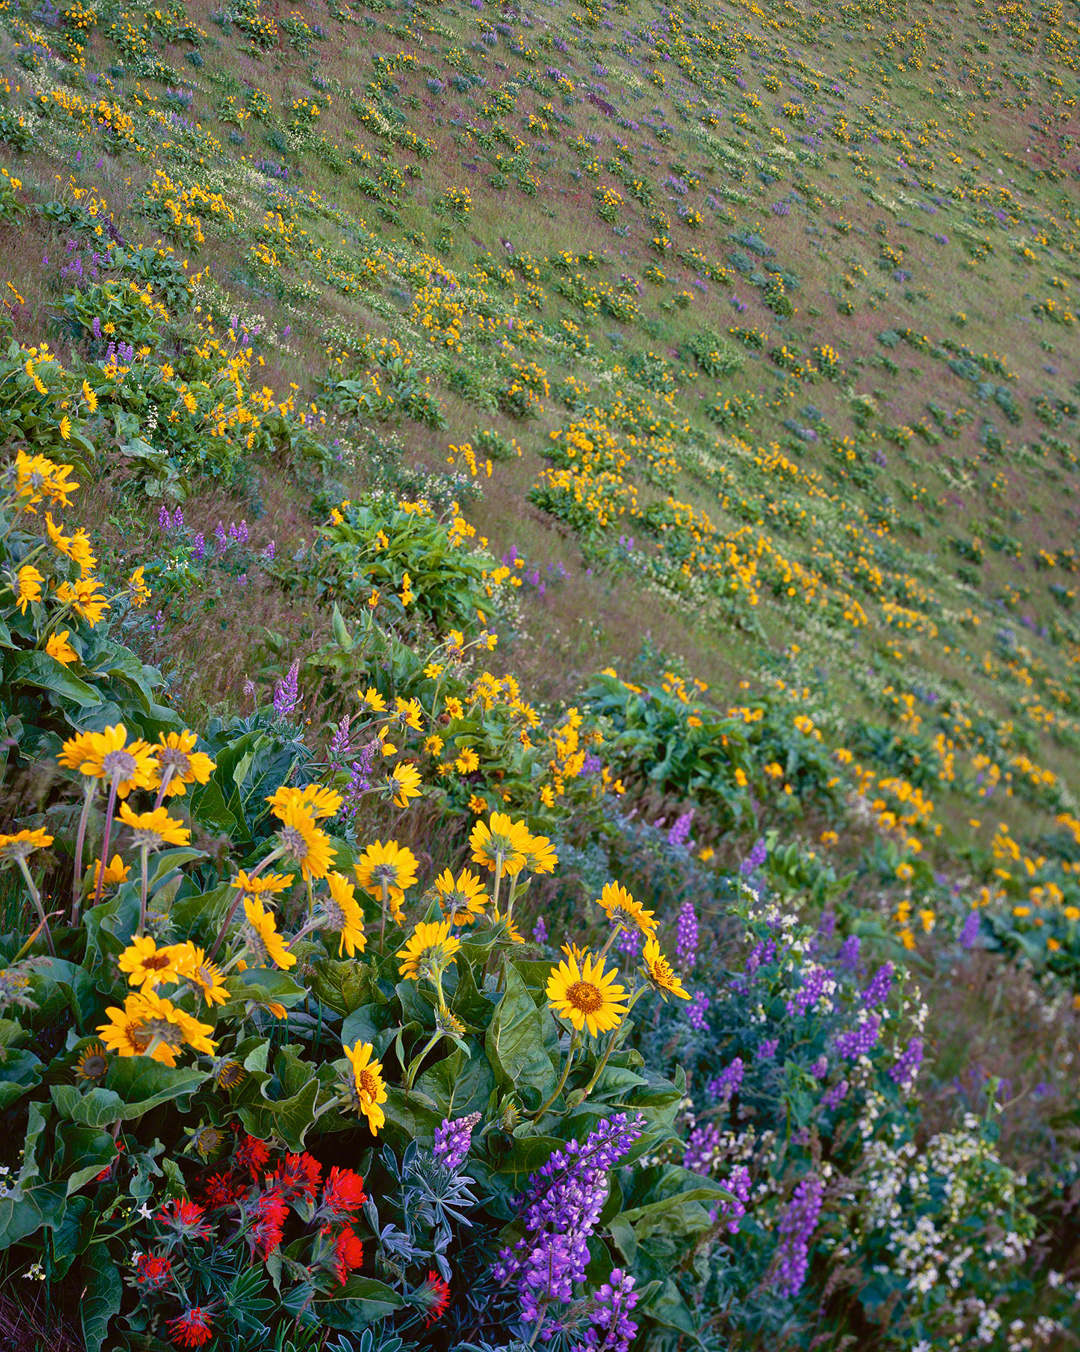 hood river valley,hood river,wildflowers,columbia river gorge,balsam root,indian paintbrush,lupines